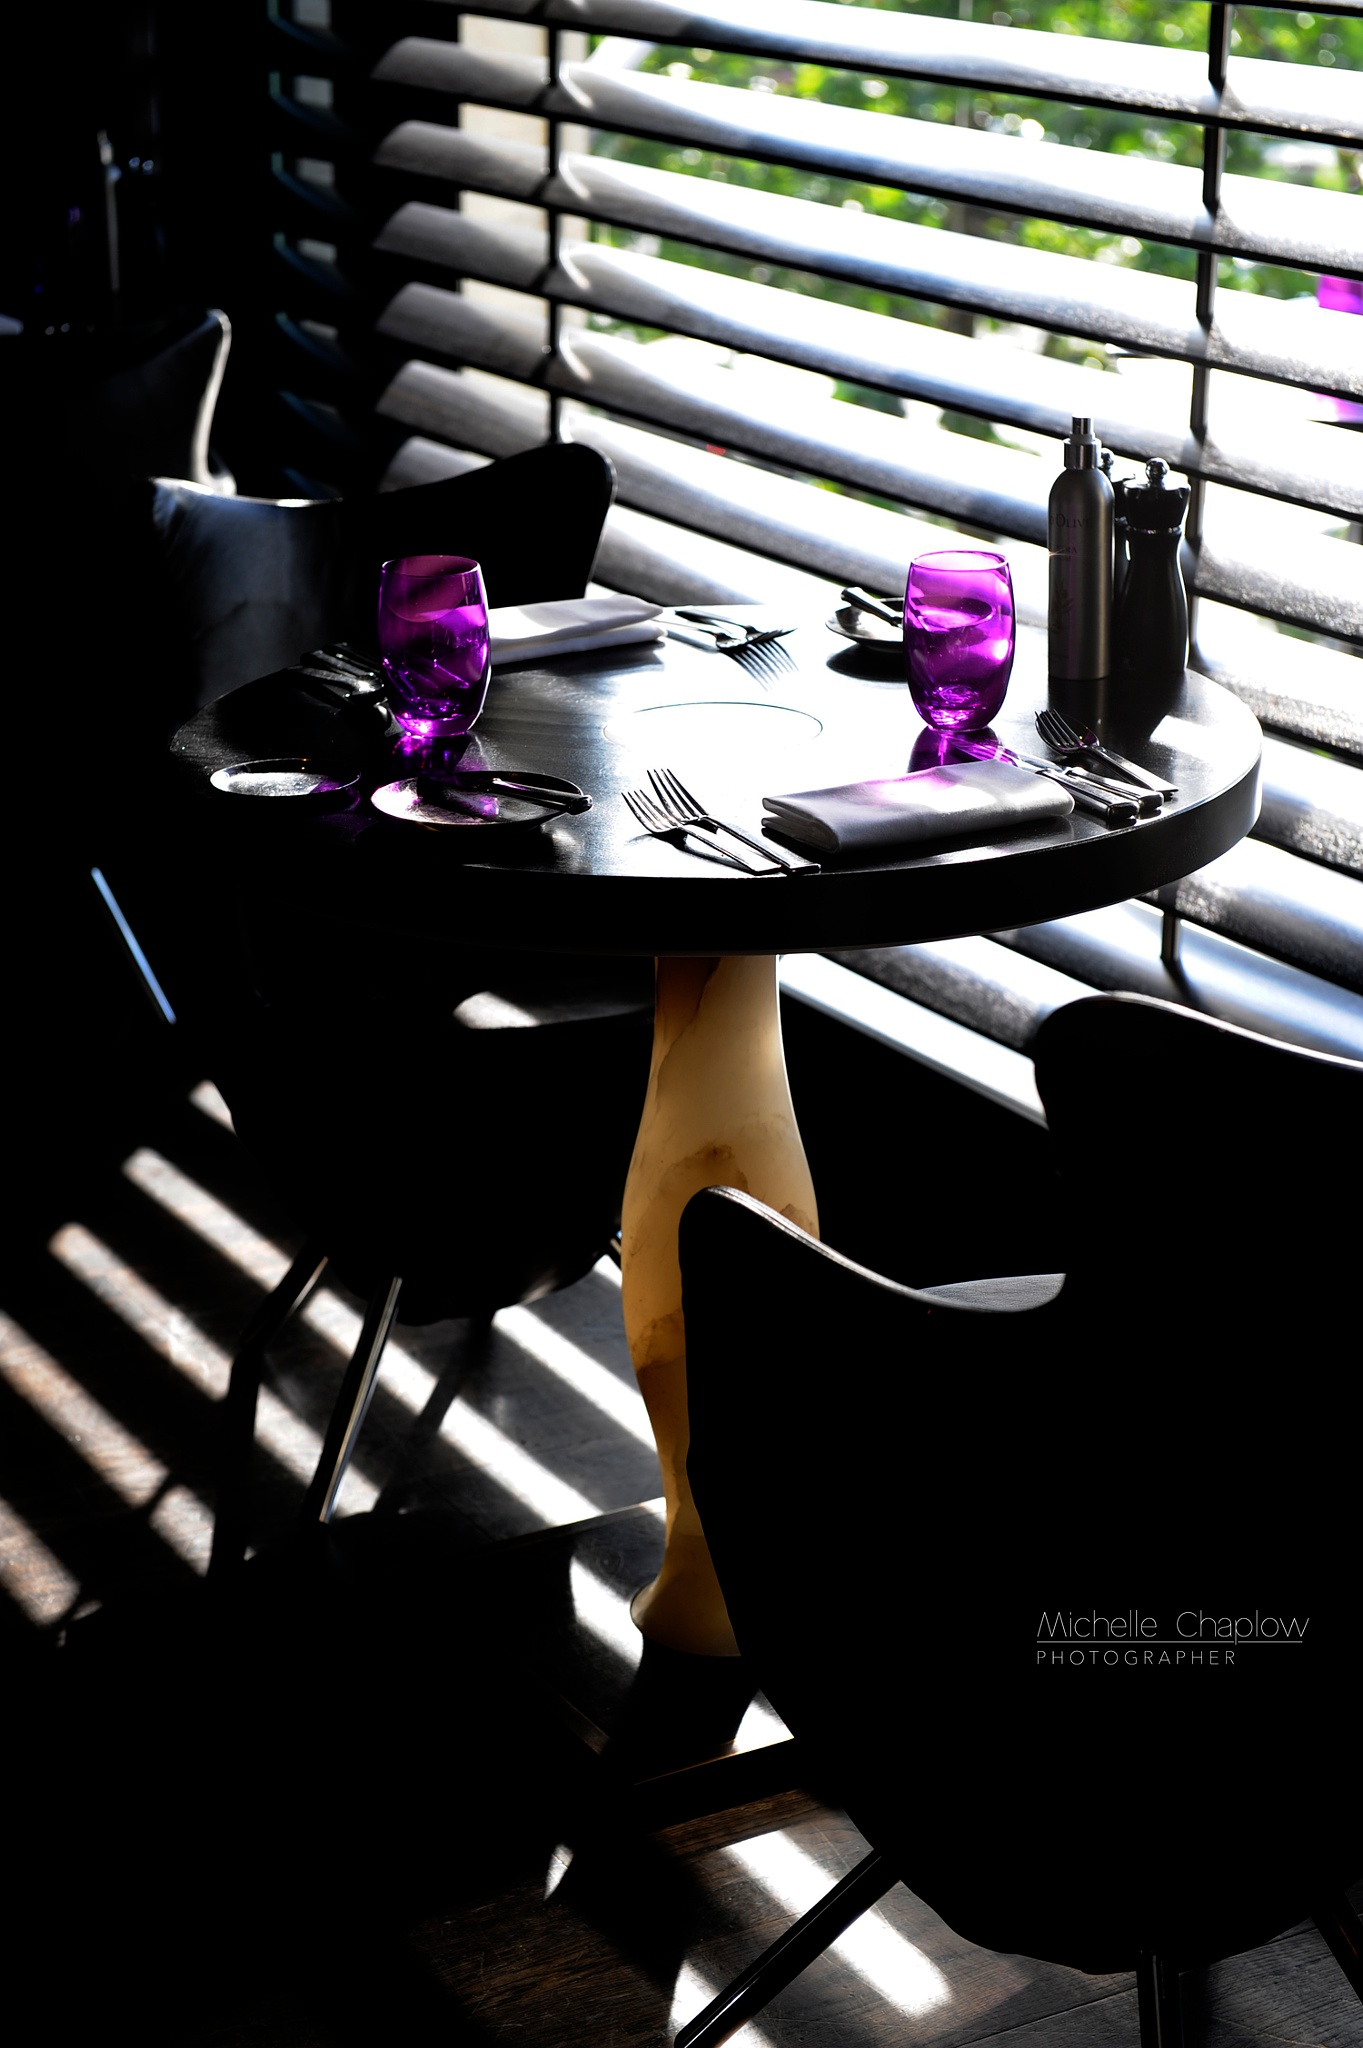 Table for two at the Sofitel, Le Louise by michellechaplow